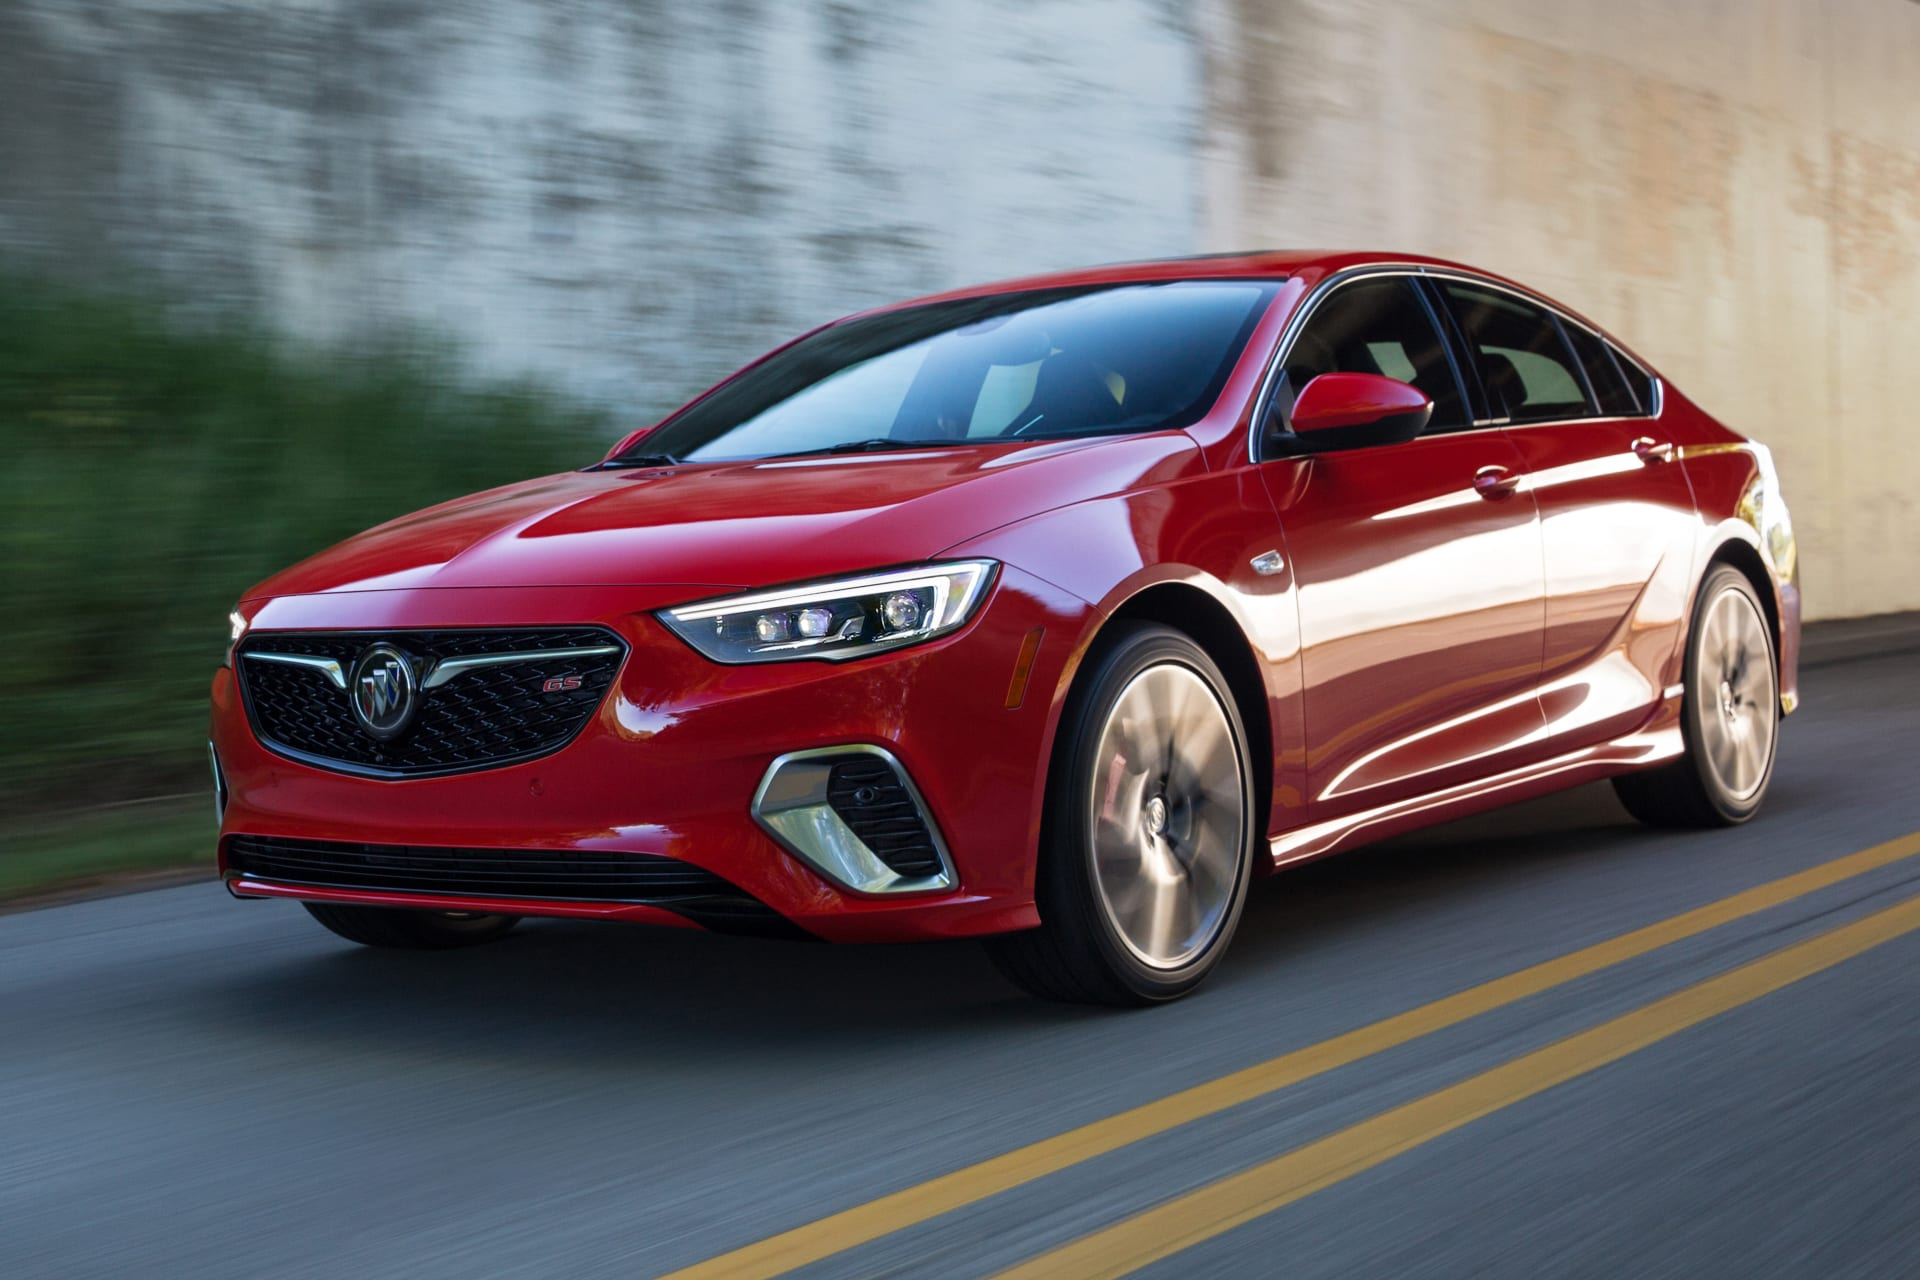 2018 Buick Regal Gs Preview | News | Cars New 2021 Buick Regal Gs Colors, Changes, Horsepower